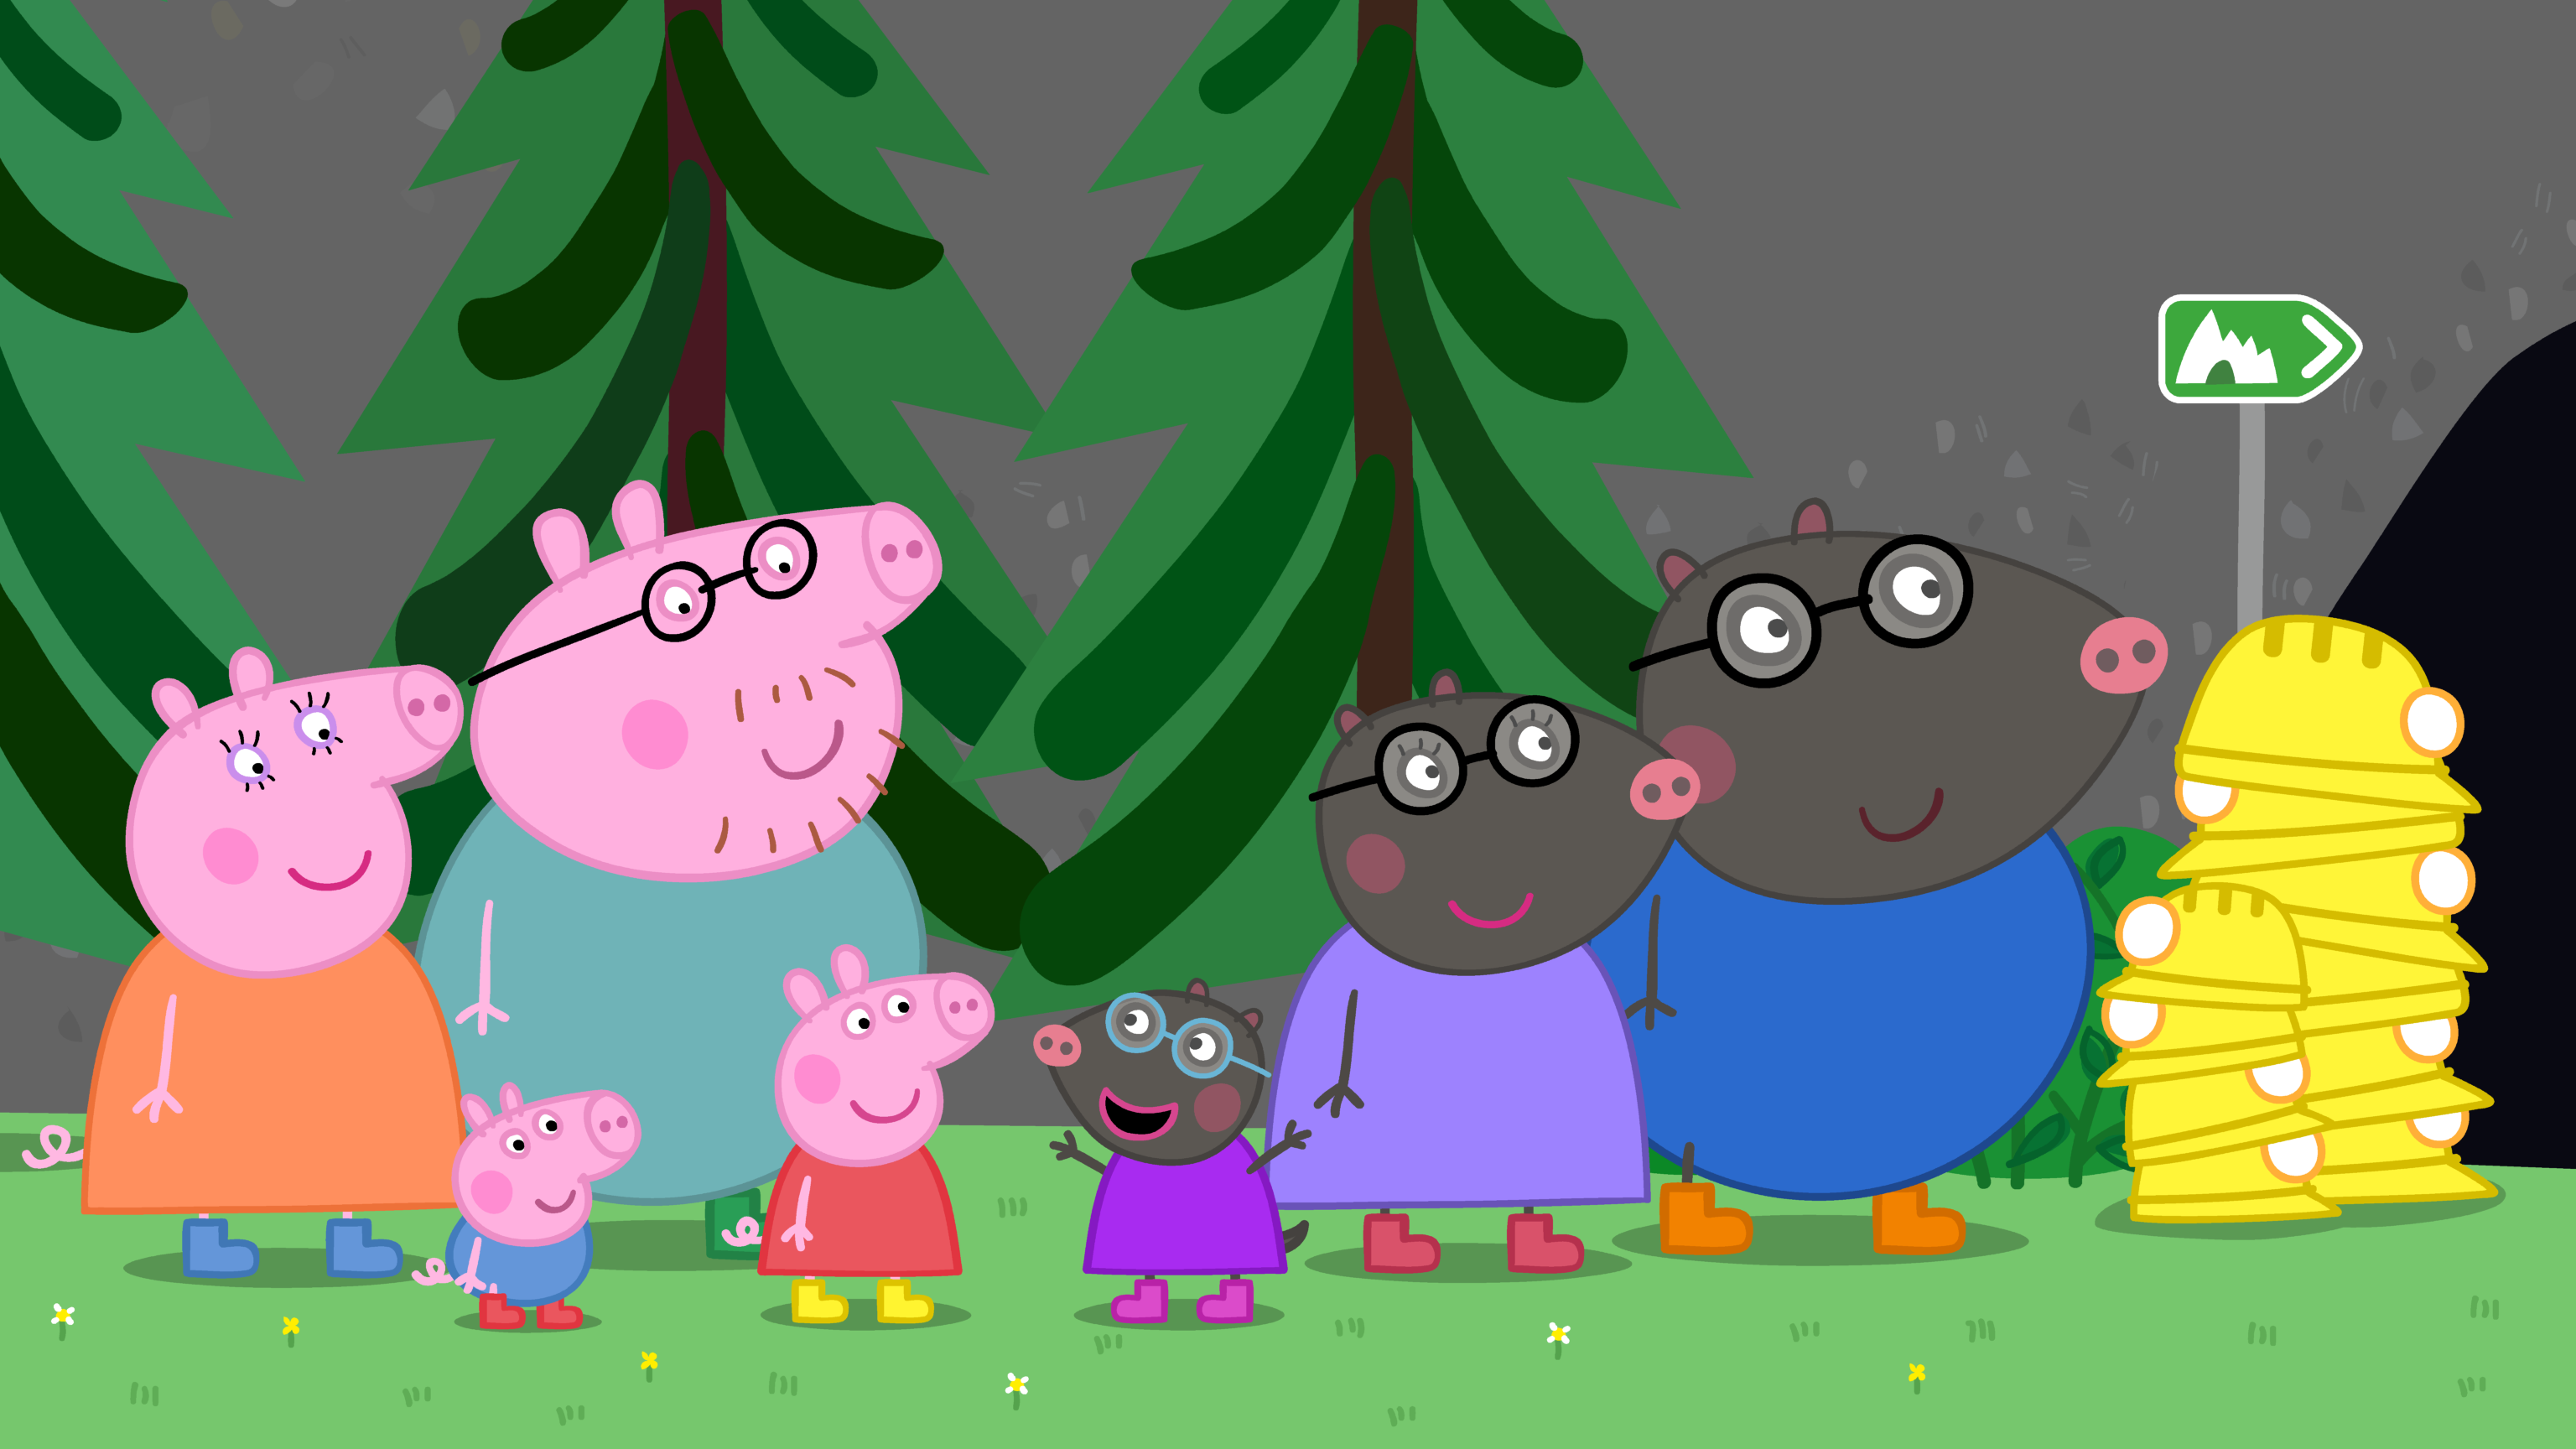 Nickelodeon's New Episodes Include Peppa Pig, Becca's Bunch